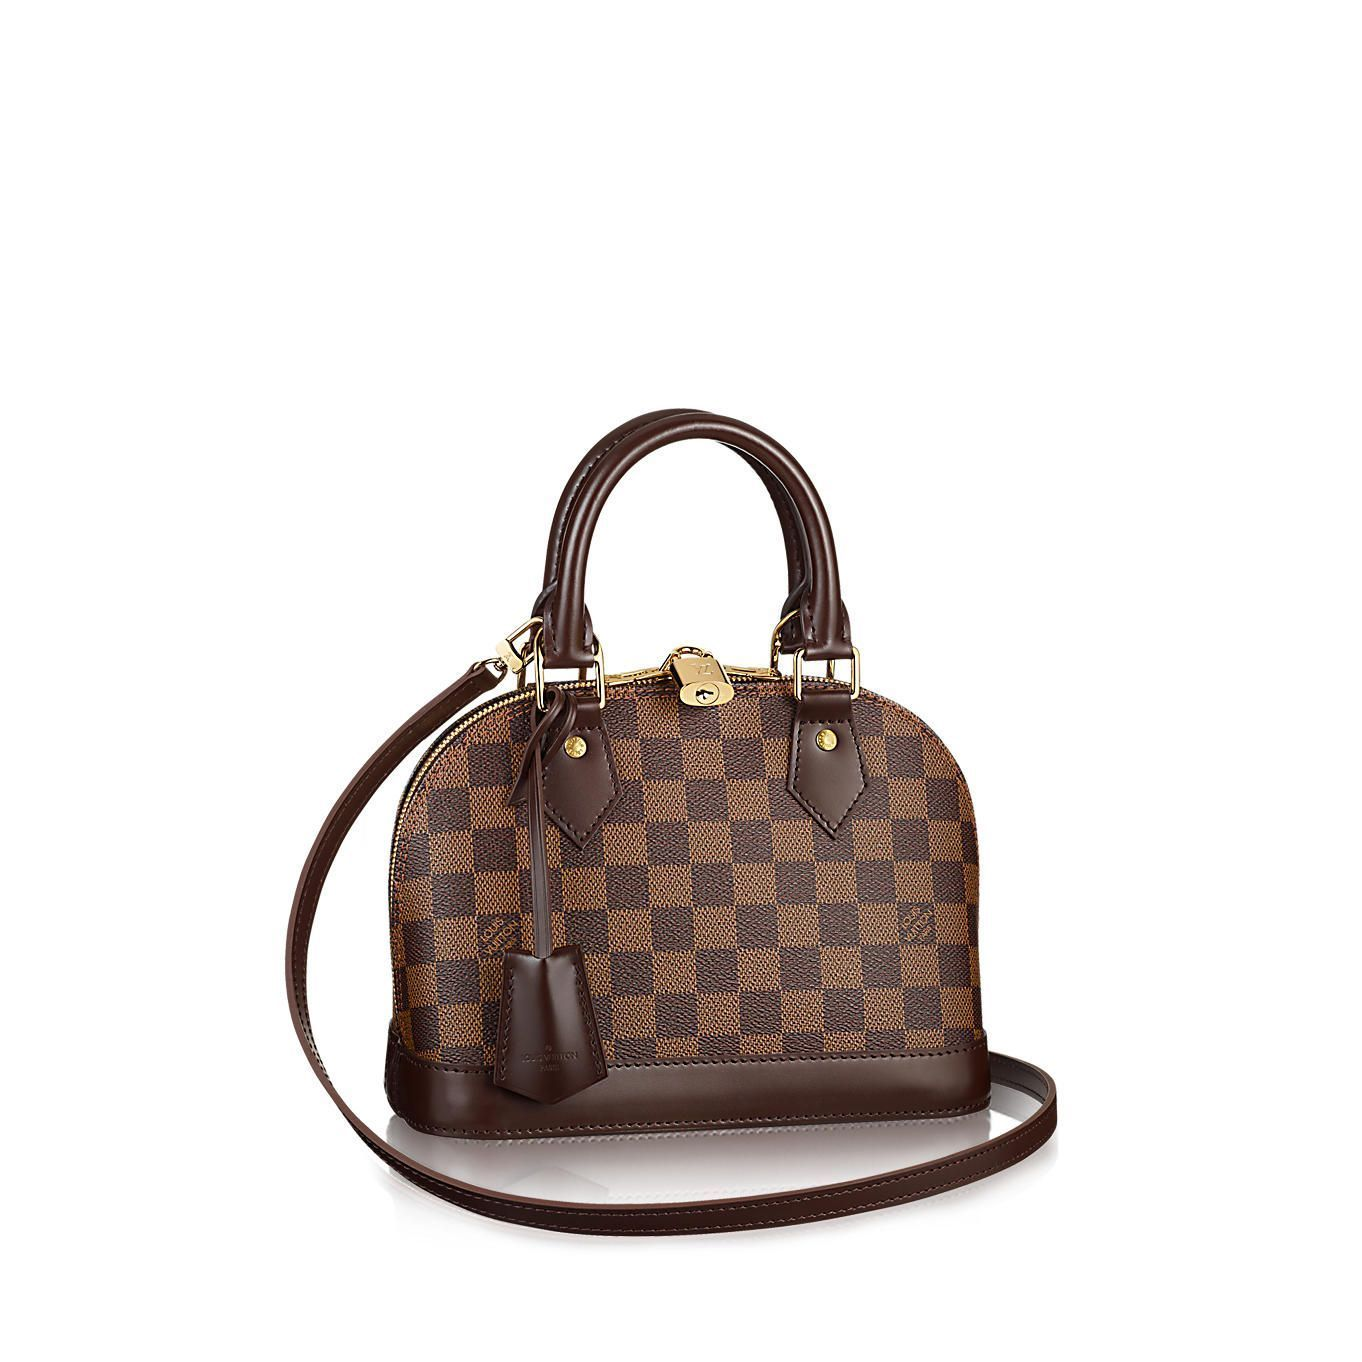 395429d6463 Alma BB Damier Ebene in WOMEN s HANDBAGS collections by Louis Vuitton